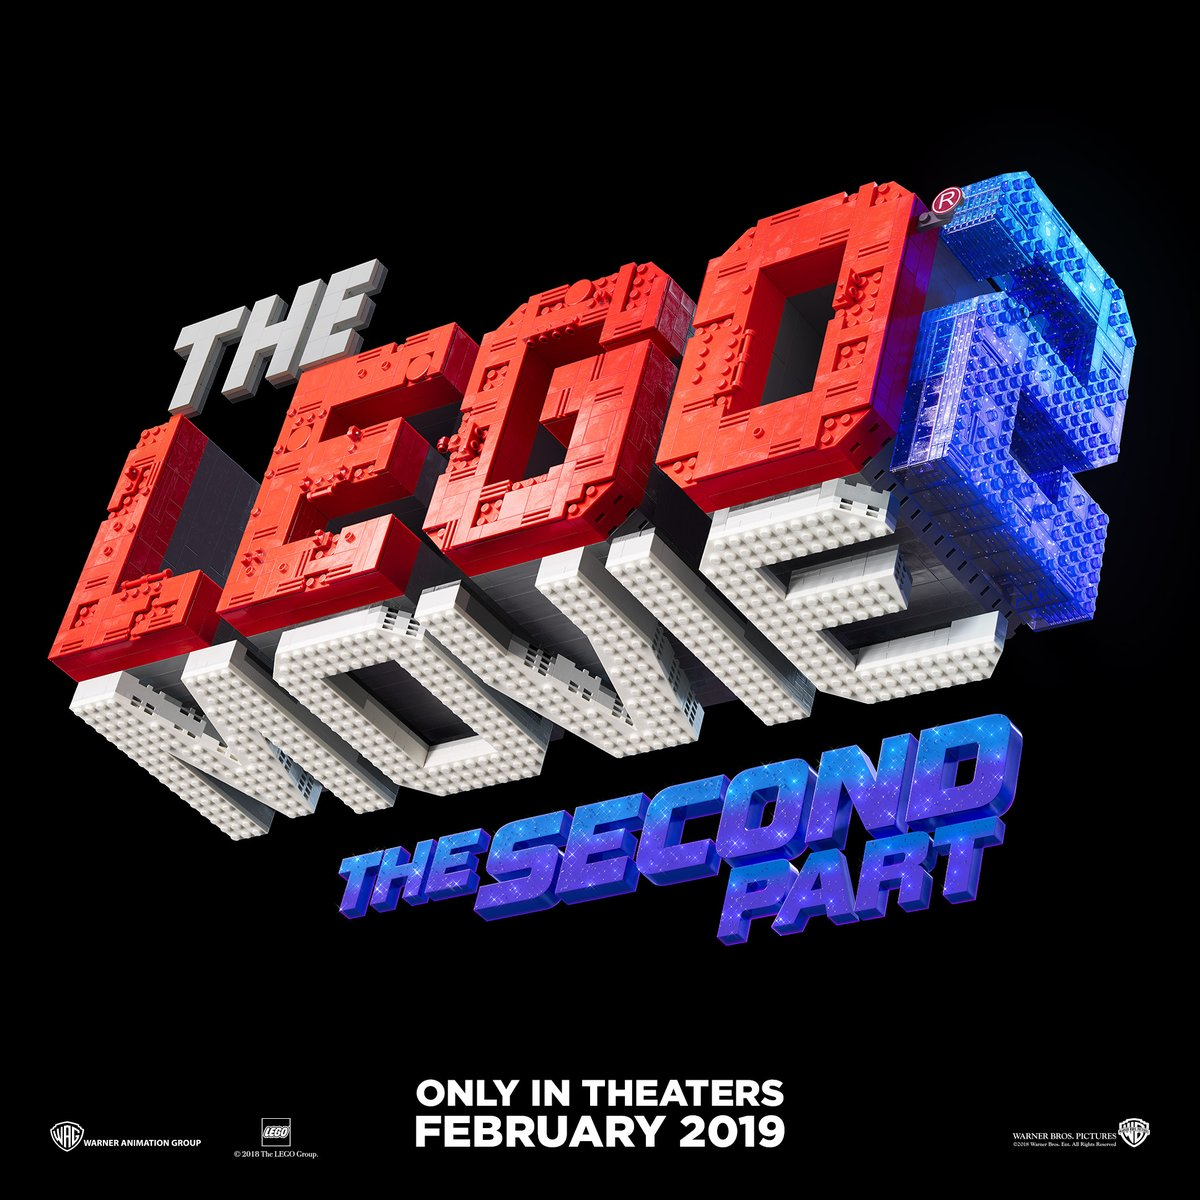 more info about the lego movie 2 sets revealed by amazon france